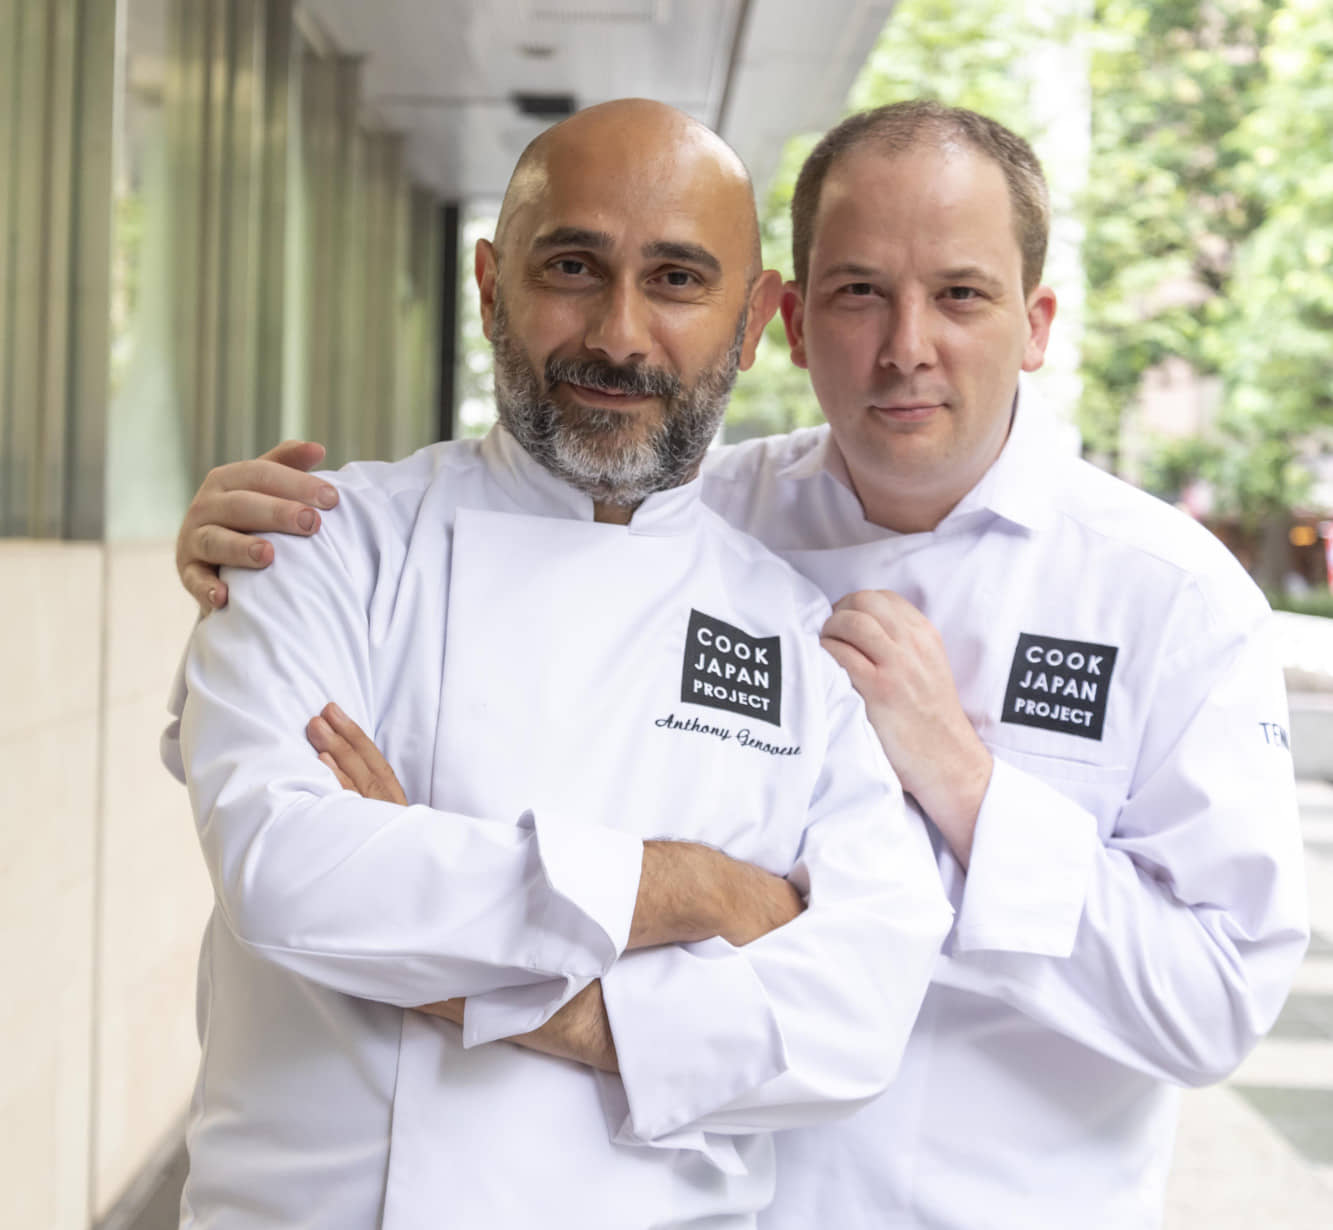 Culinary collaborators: Chef Anthony Genovese (left) poses with Jerome Quilbeuf. | COURTESY OF COOK JAPAN PROJECT